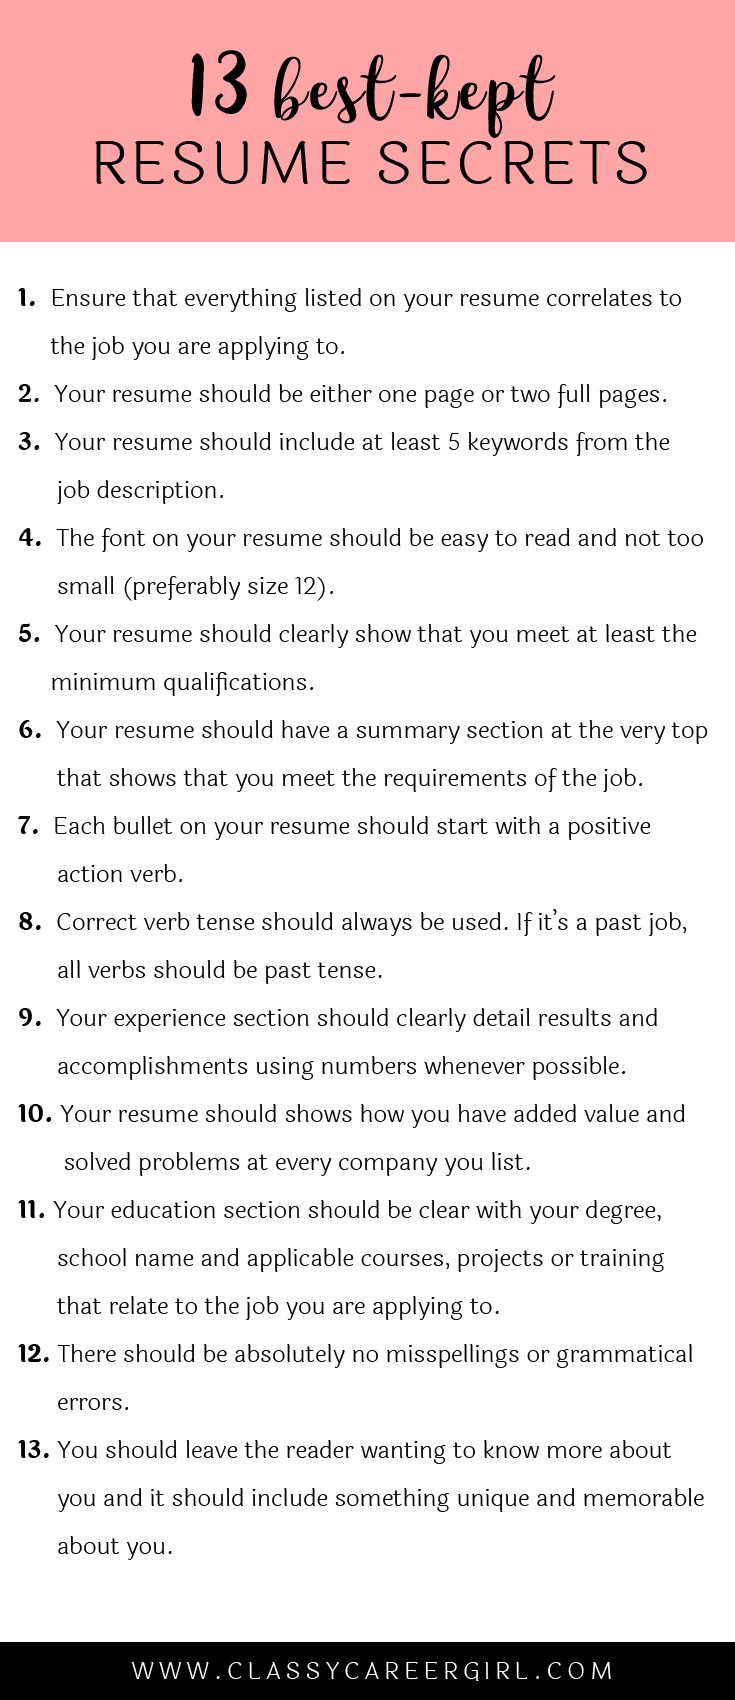 Opposenewapstandardsus  Picturesque  Ideas About Resume On Pinterest  Cv Format Resume Cv And  With Fascinating Some Hiring Managers Will Toss Your Resume Out If You Dont Know These  With Adorable Do You Need A Cover Letter For Your Resume Also What Is A Objective In A Resume In Addition Skills Based Resume Sample And Objective Line On Resume As Well As Automotive Sales Resume Additionally How To Write References In A Resume From Pinterestcom With Opposenewapstandardsus  Fascinating  Ideas About Resume On Pinterest  Cv Format Resume Cv And  With Adorable Some Hiring Managers Will Toss Your Resume Out If You Dont Know These  And Picturesque Do You Need A Cover Letter For Your Resume Also What Is A Objective In A Resume In Addition Skills Based Resume Sample From Pinterestcom